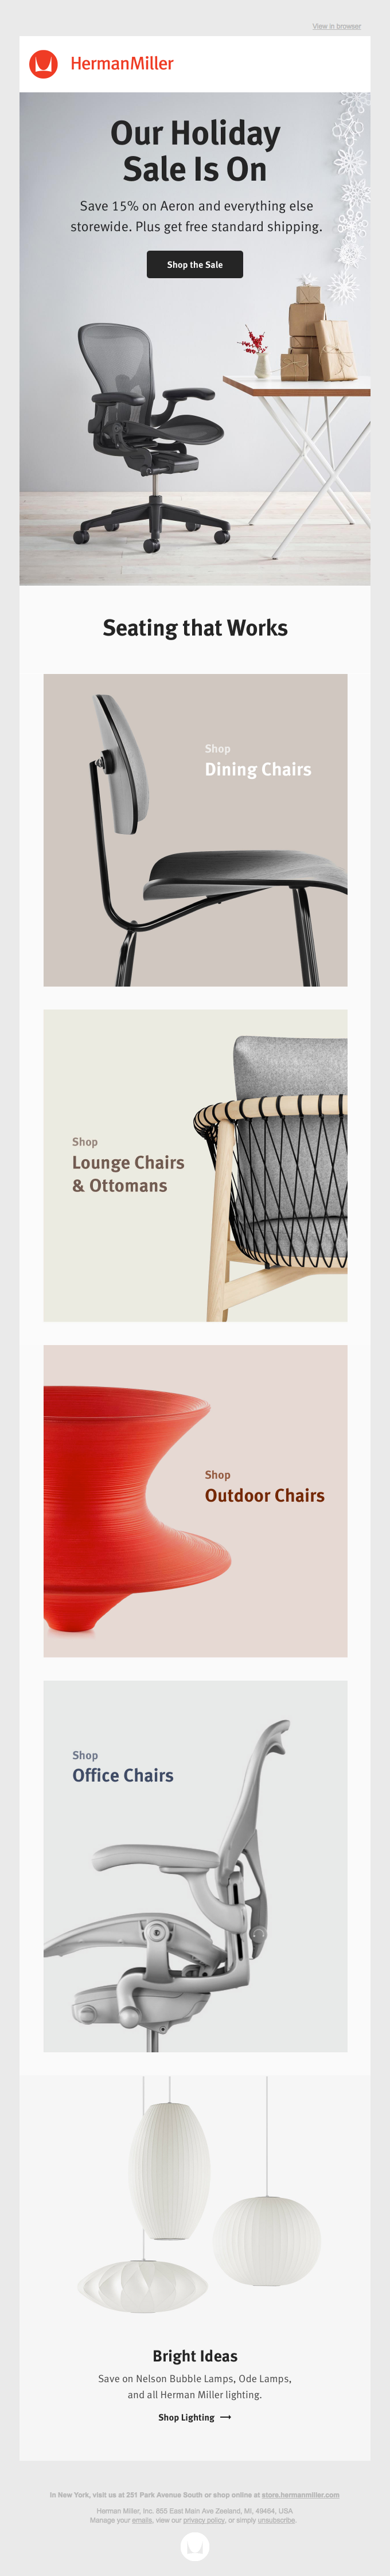 It's On: Save 15% Storewide at the Herman Miller Holiday Sale